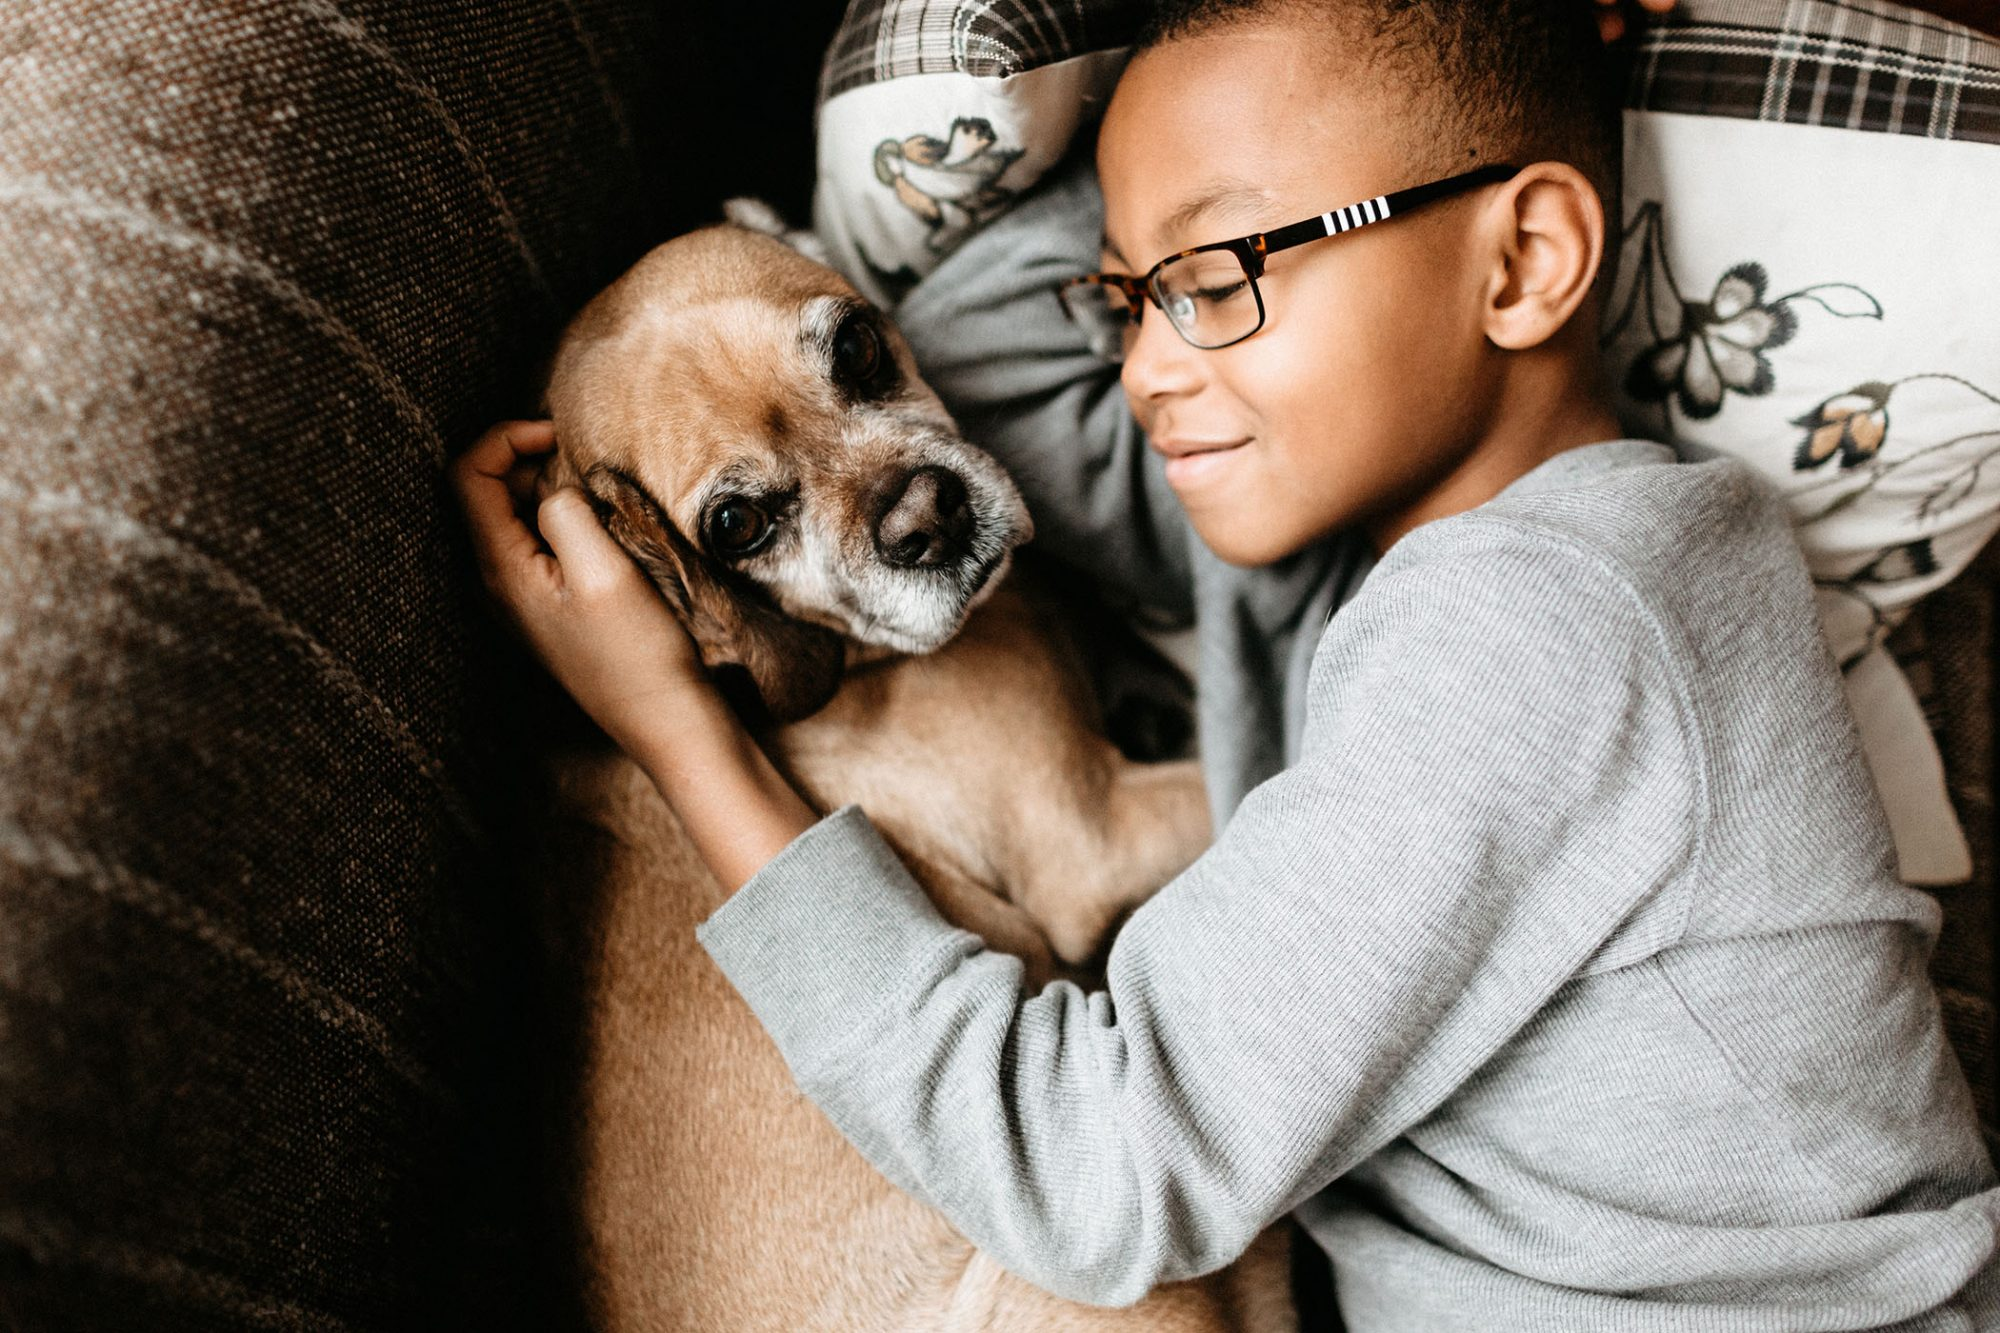 black boy snuggling dog on couch